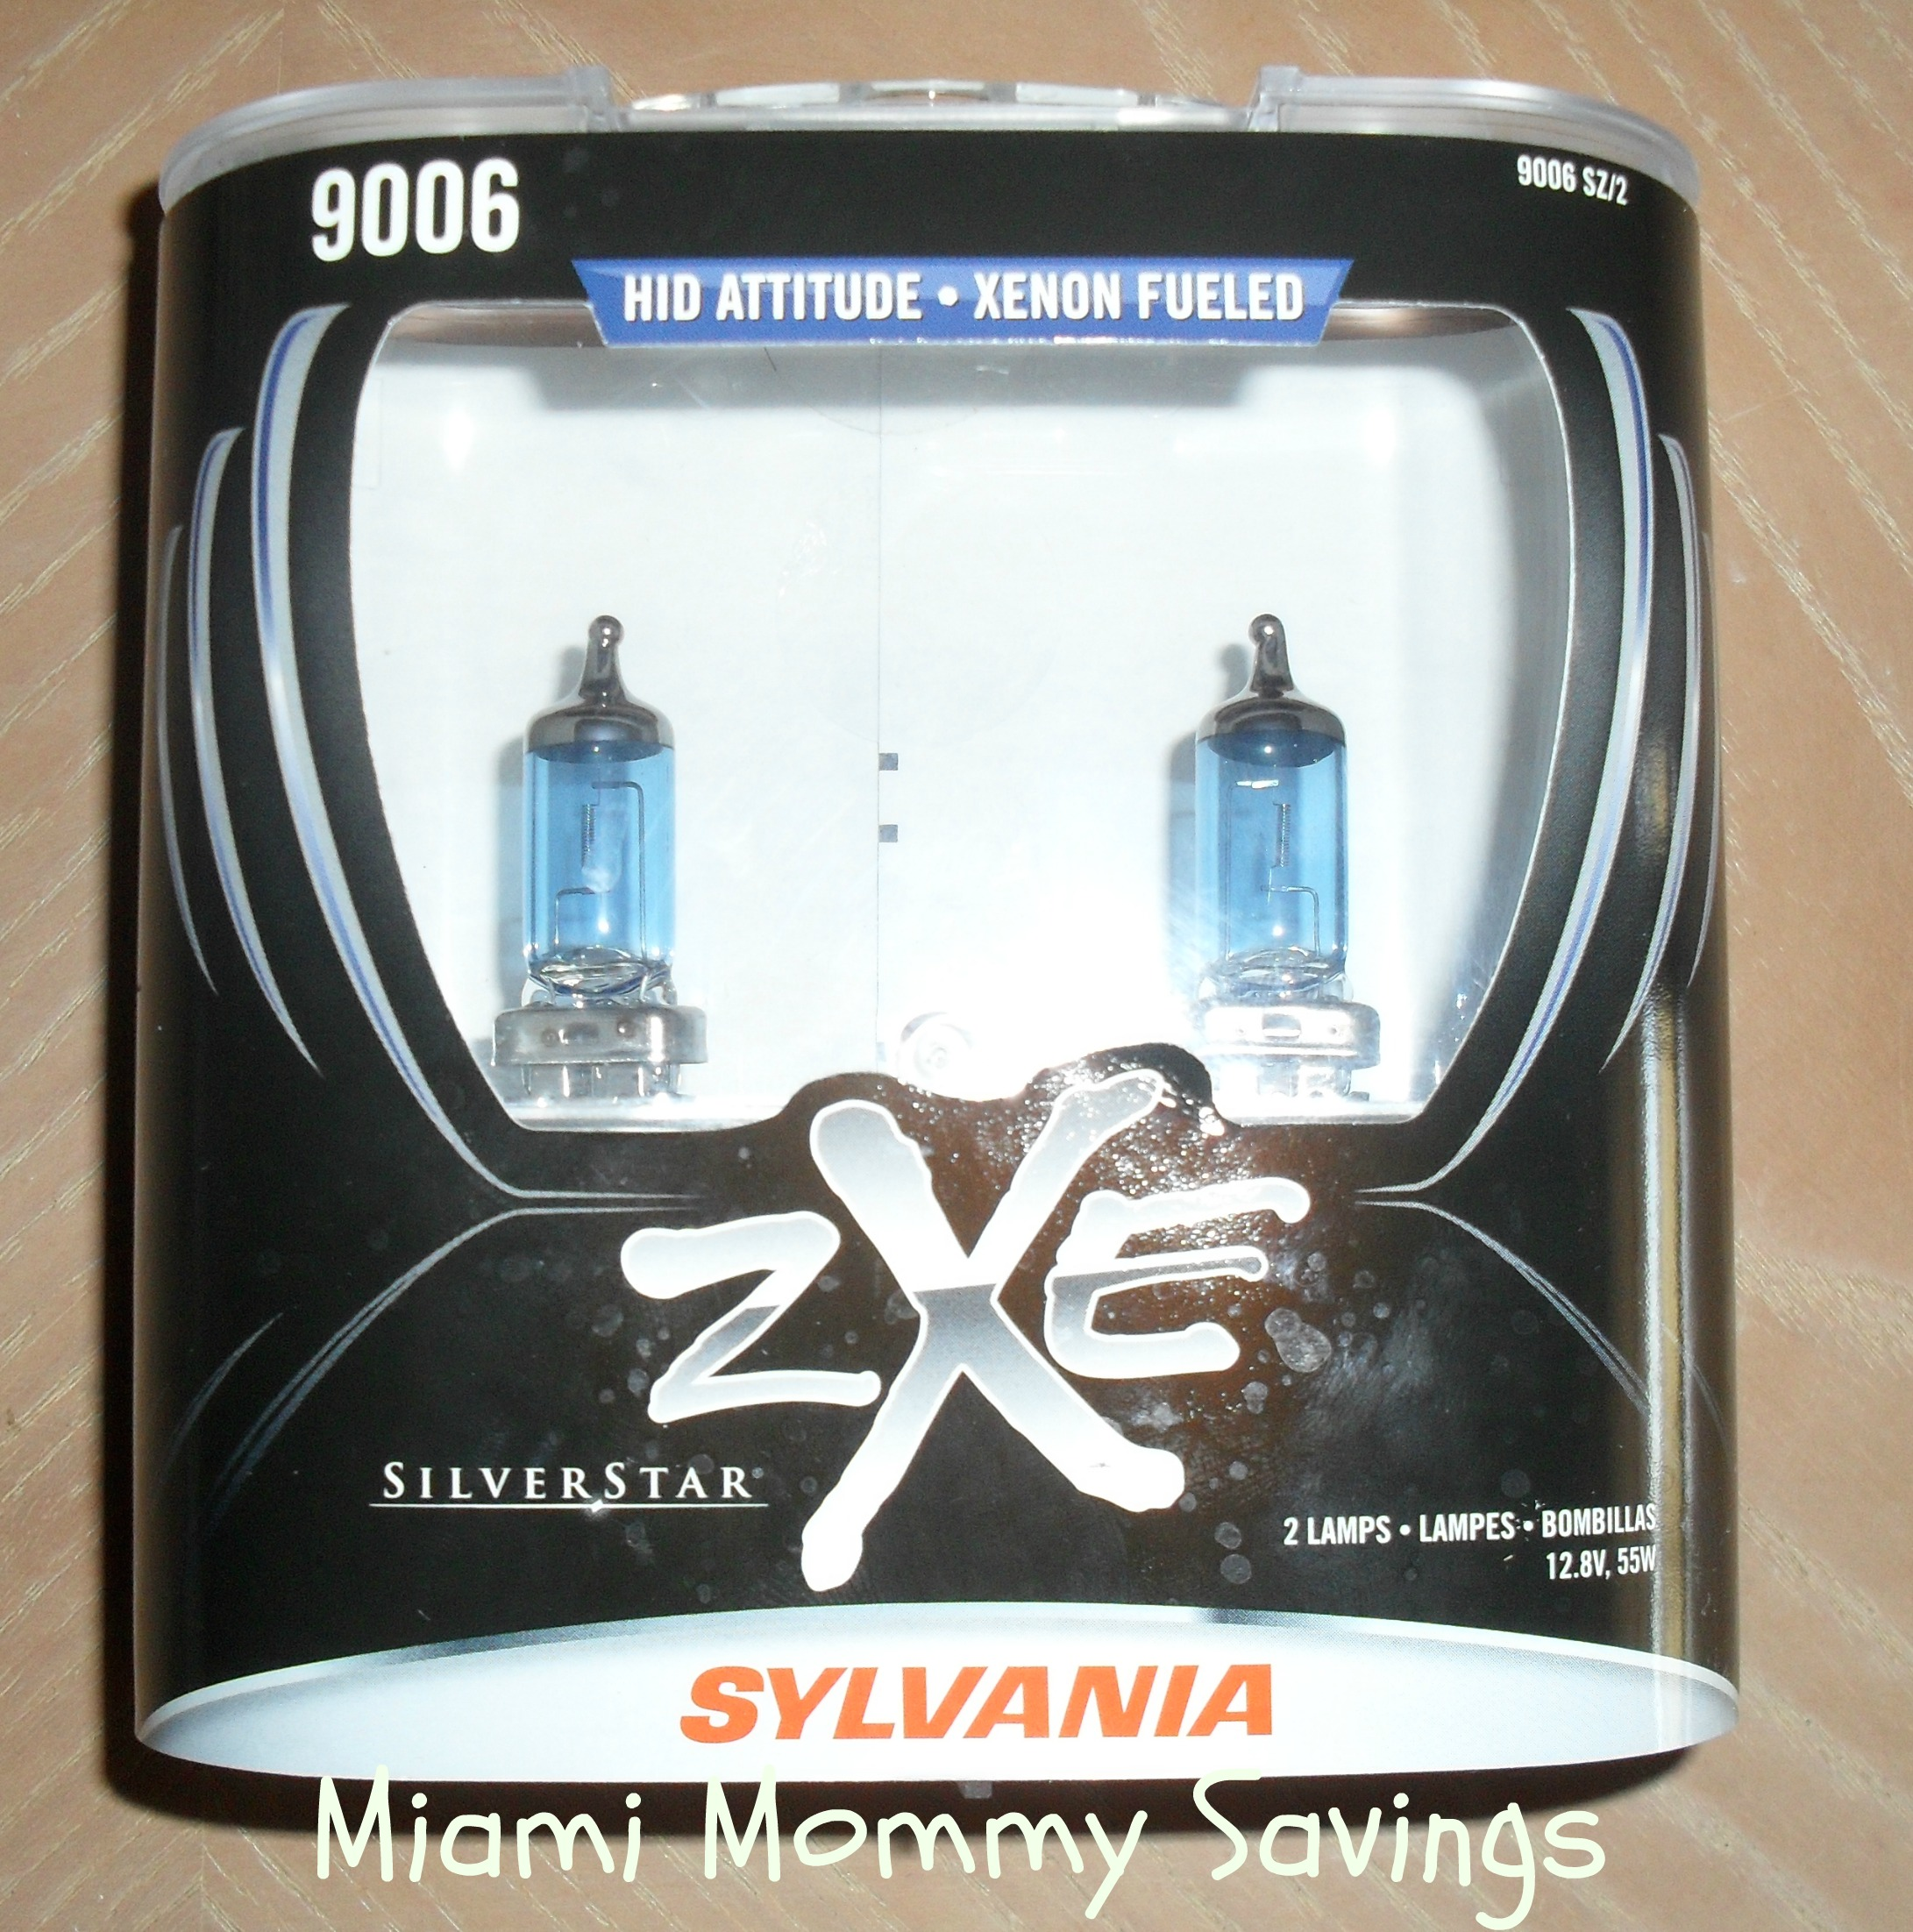 Silvania Silverstar zXe Halogen Headlights Review! @SYLVANIA